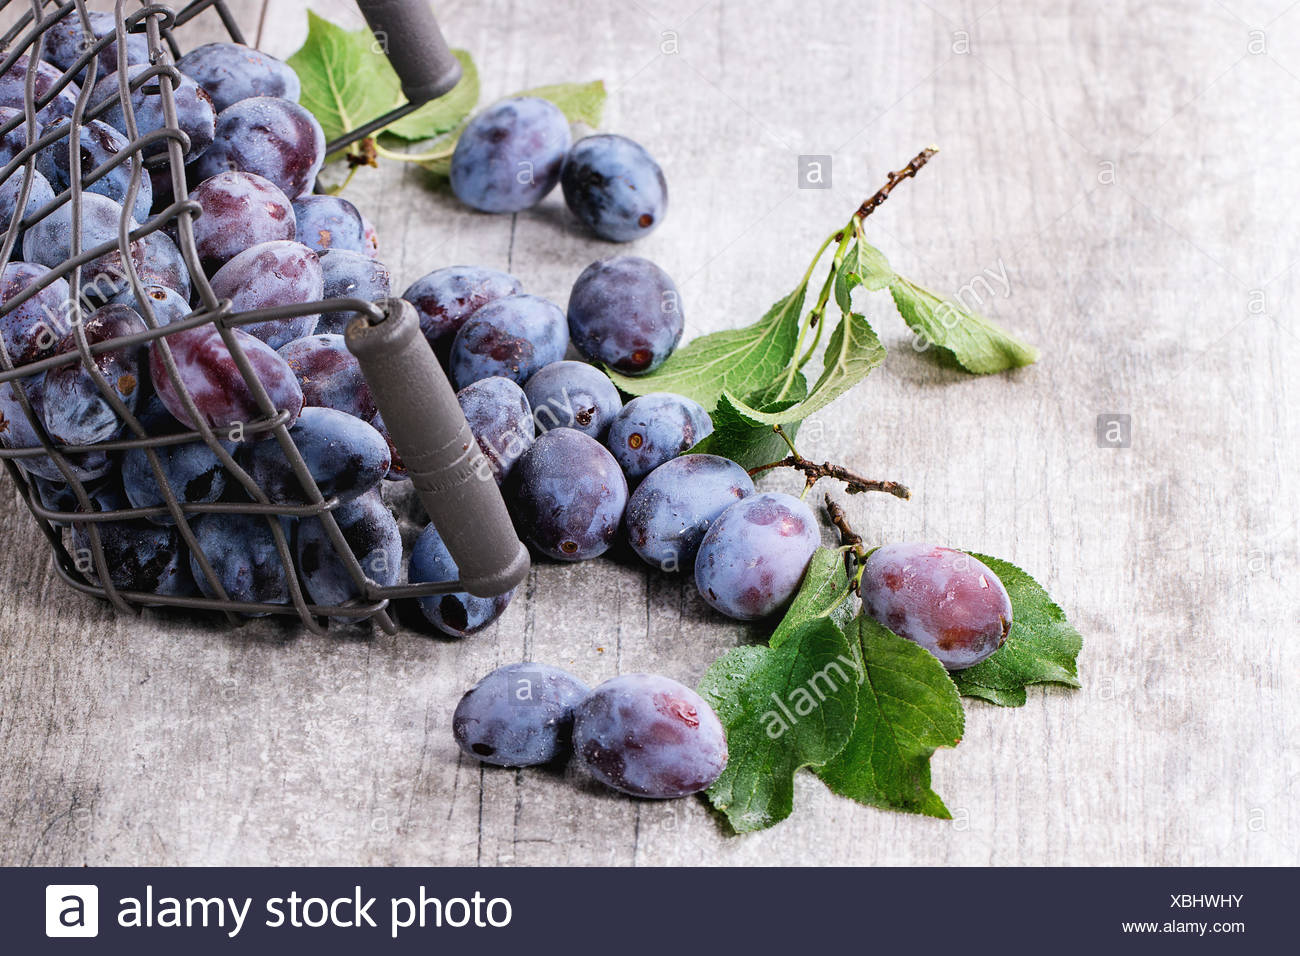 Ripe purple plums with leaves in inverted metal decorative basket over gray wooden background. - Stock Image